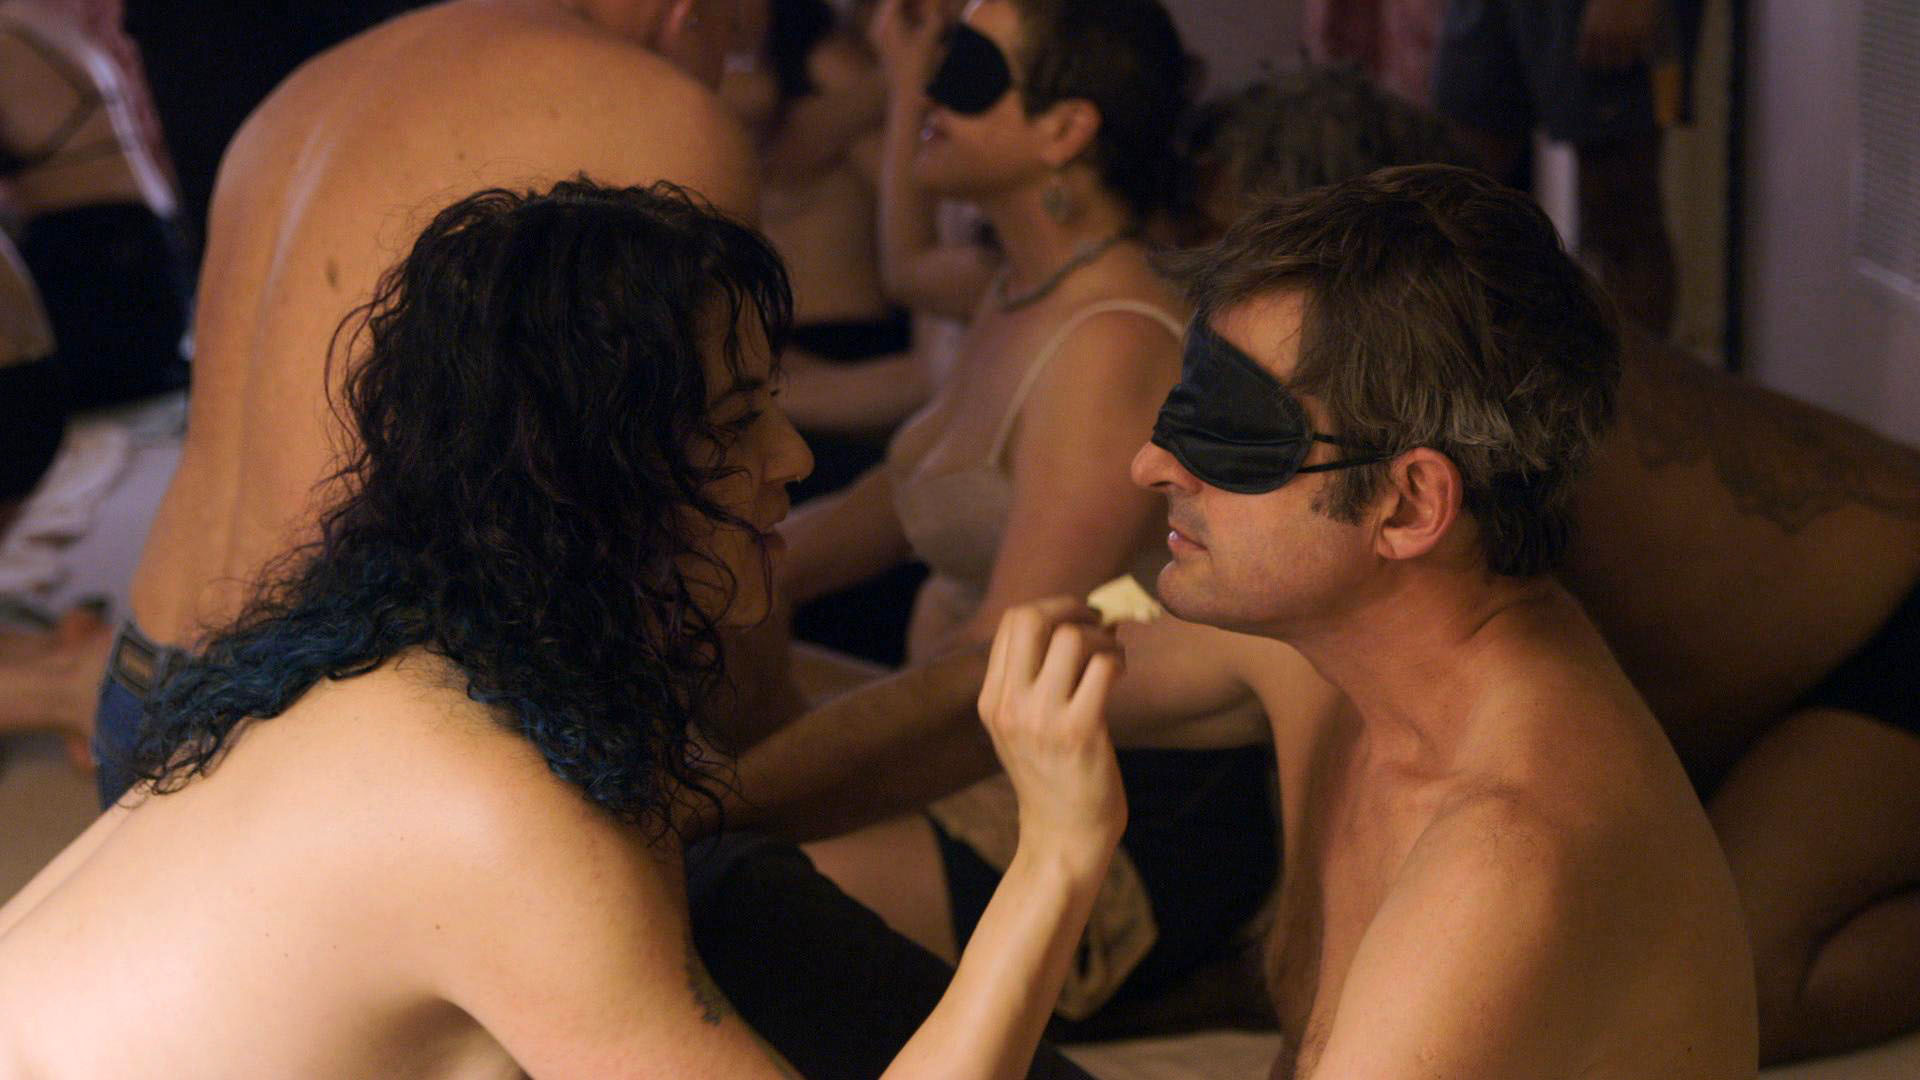 Louis Theroux cut some rather provocative scenes from his polyamory documentary